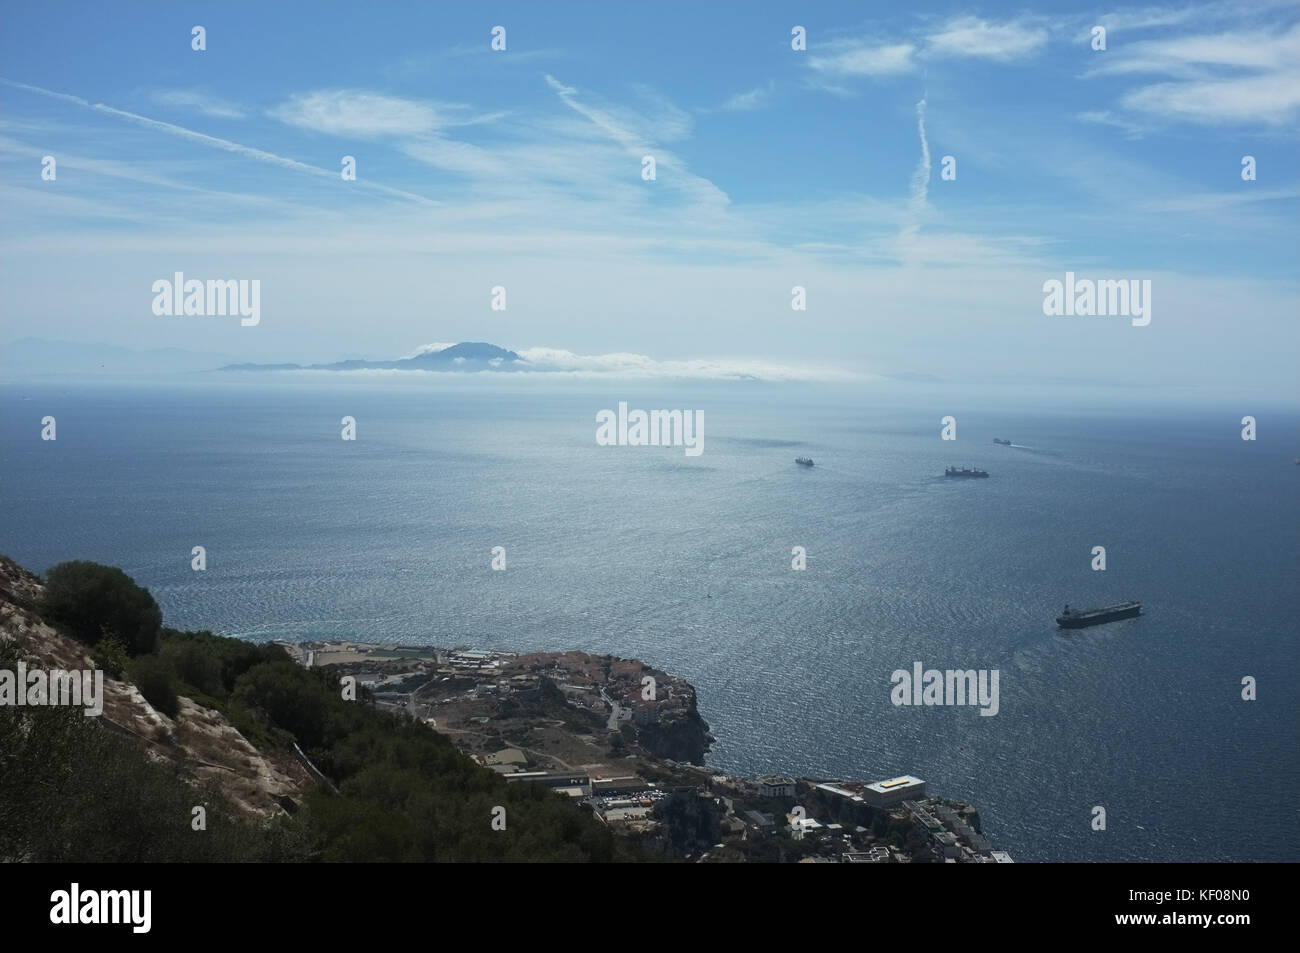 The view towards Africa from O'Hara's Battery, Gibraltar, September 2017 - Stock Image